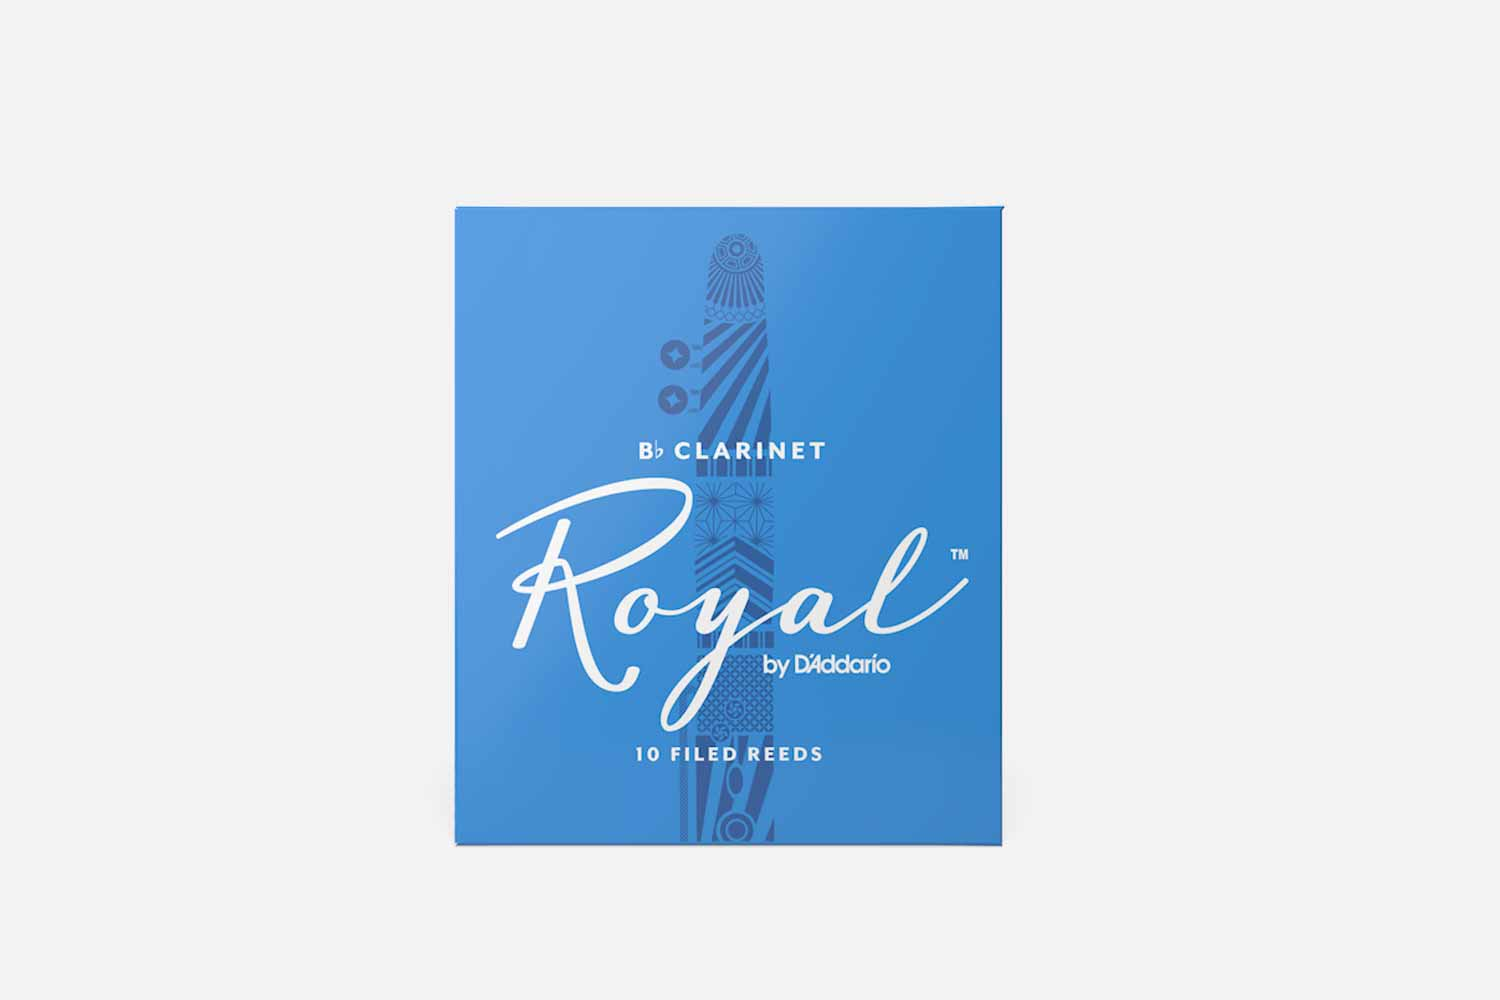 D'Addario Royal rieten voor Bb klarinet (5437508026532)